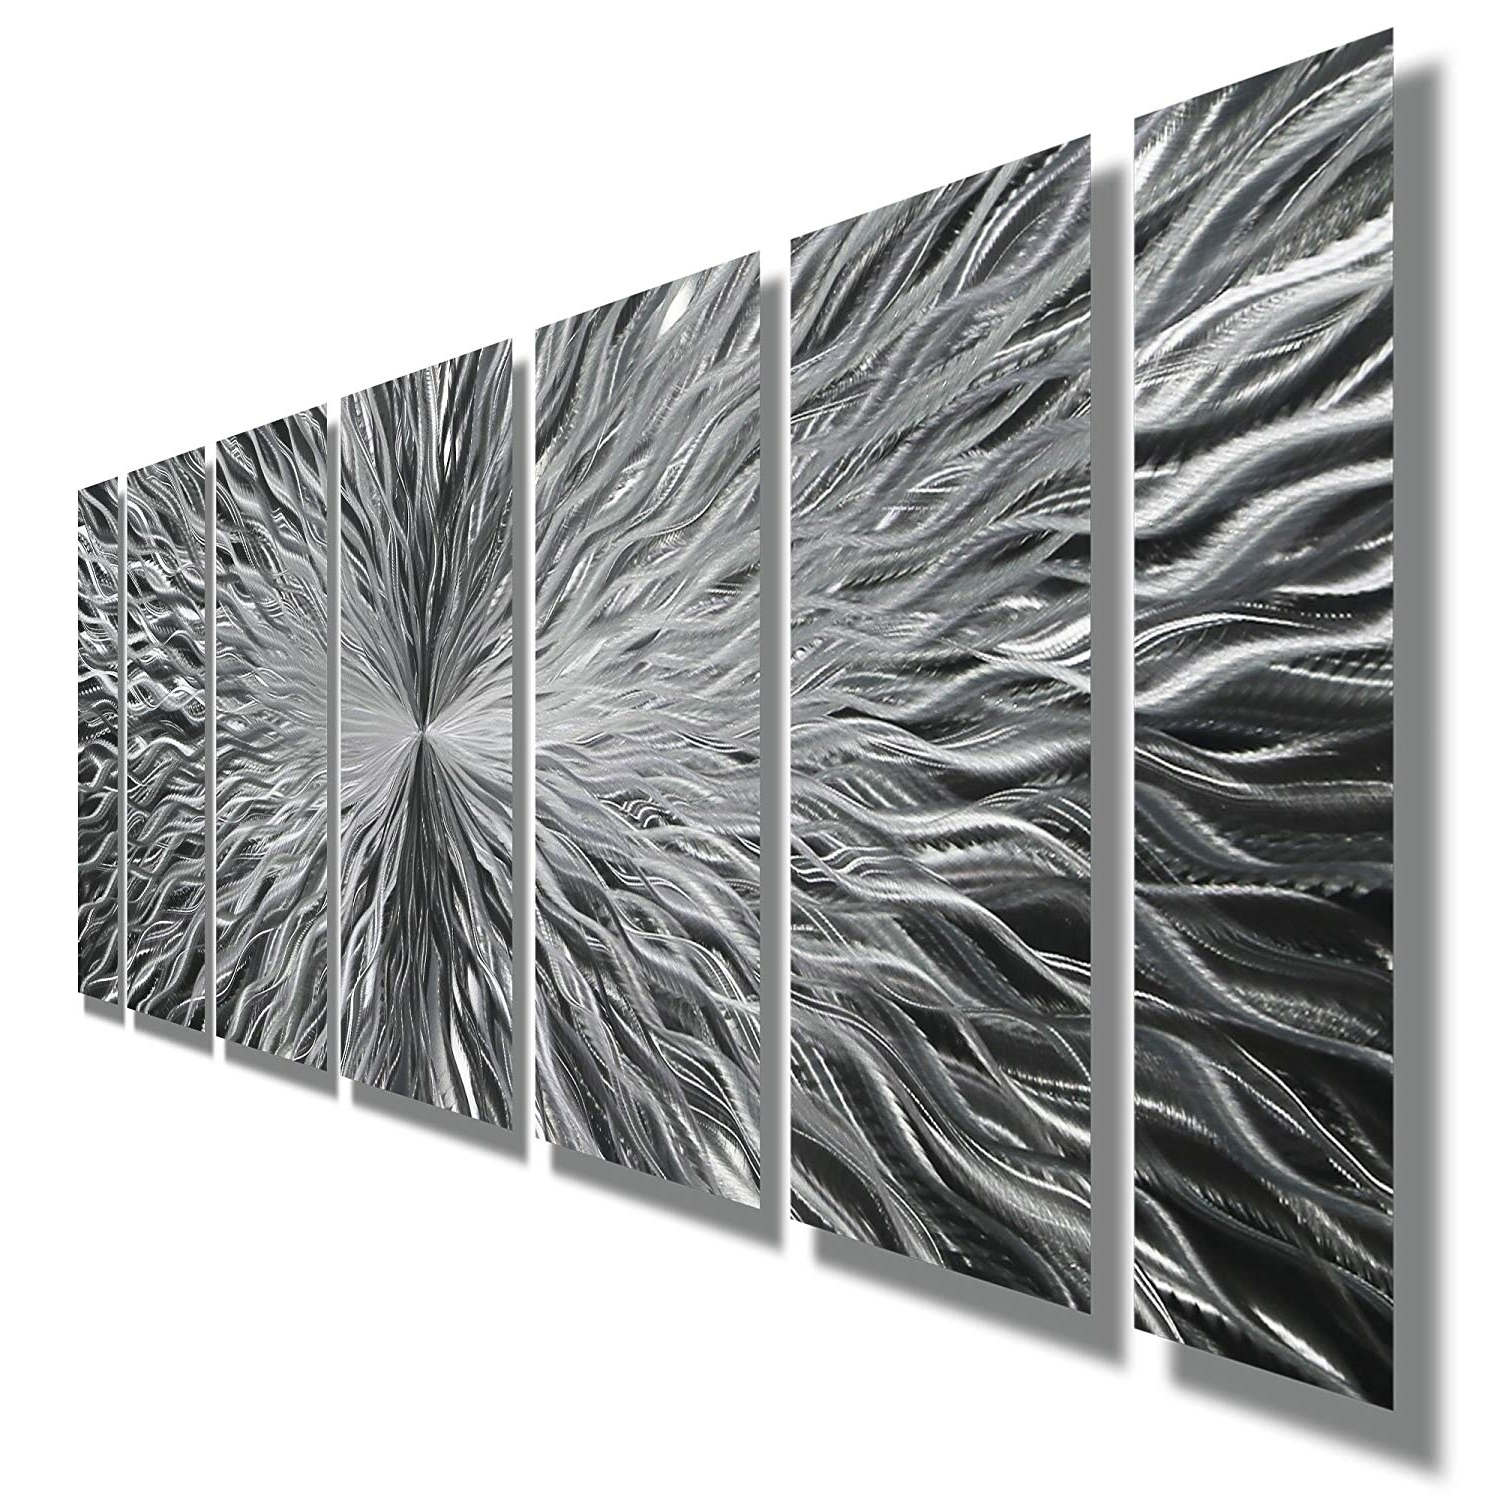 Amazon: Silver Contemporary Metal Wall Art – Abstract Home Decor Inside 2017 Contemporary Metal Wall Art (View 4 of 15)